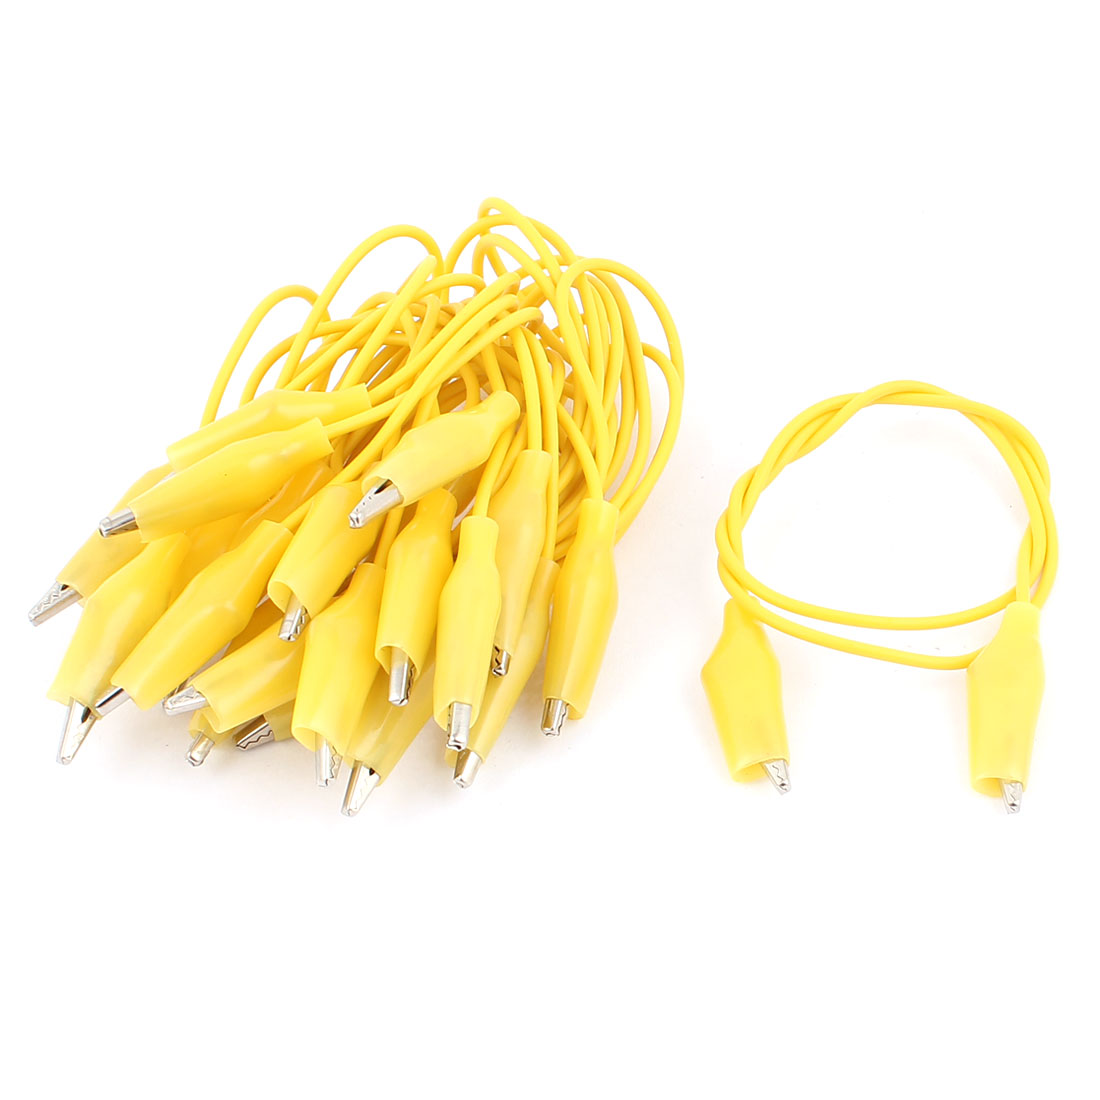 10pcs Yellow Dual Ended Test Leads Alligator Crocodile Roach Clip Jumper Cable 47cm Long